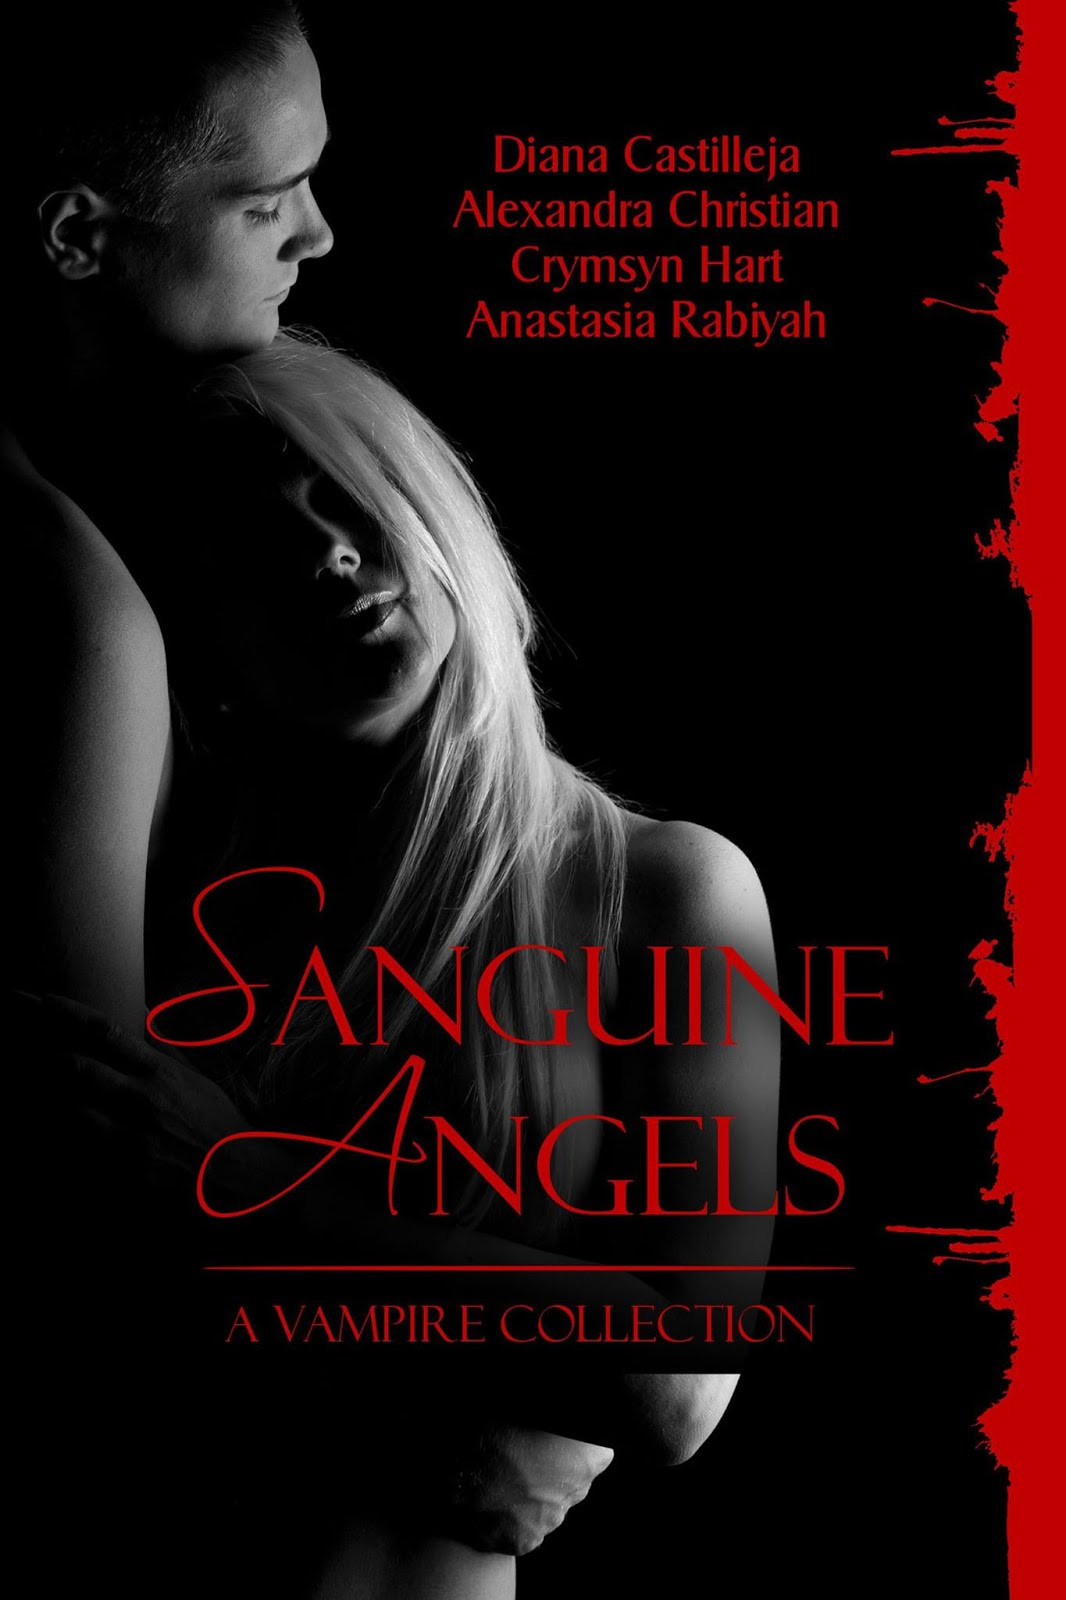 Sanguine Angels